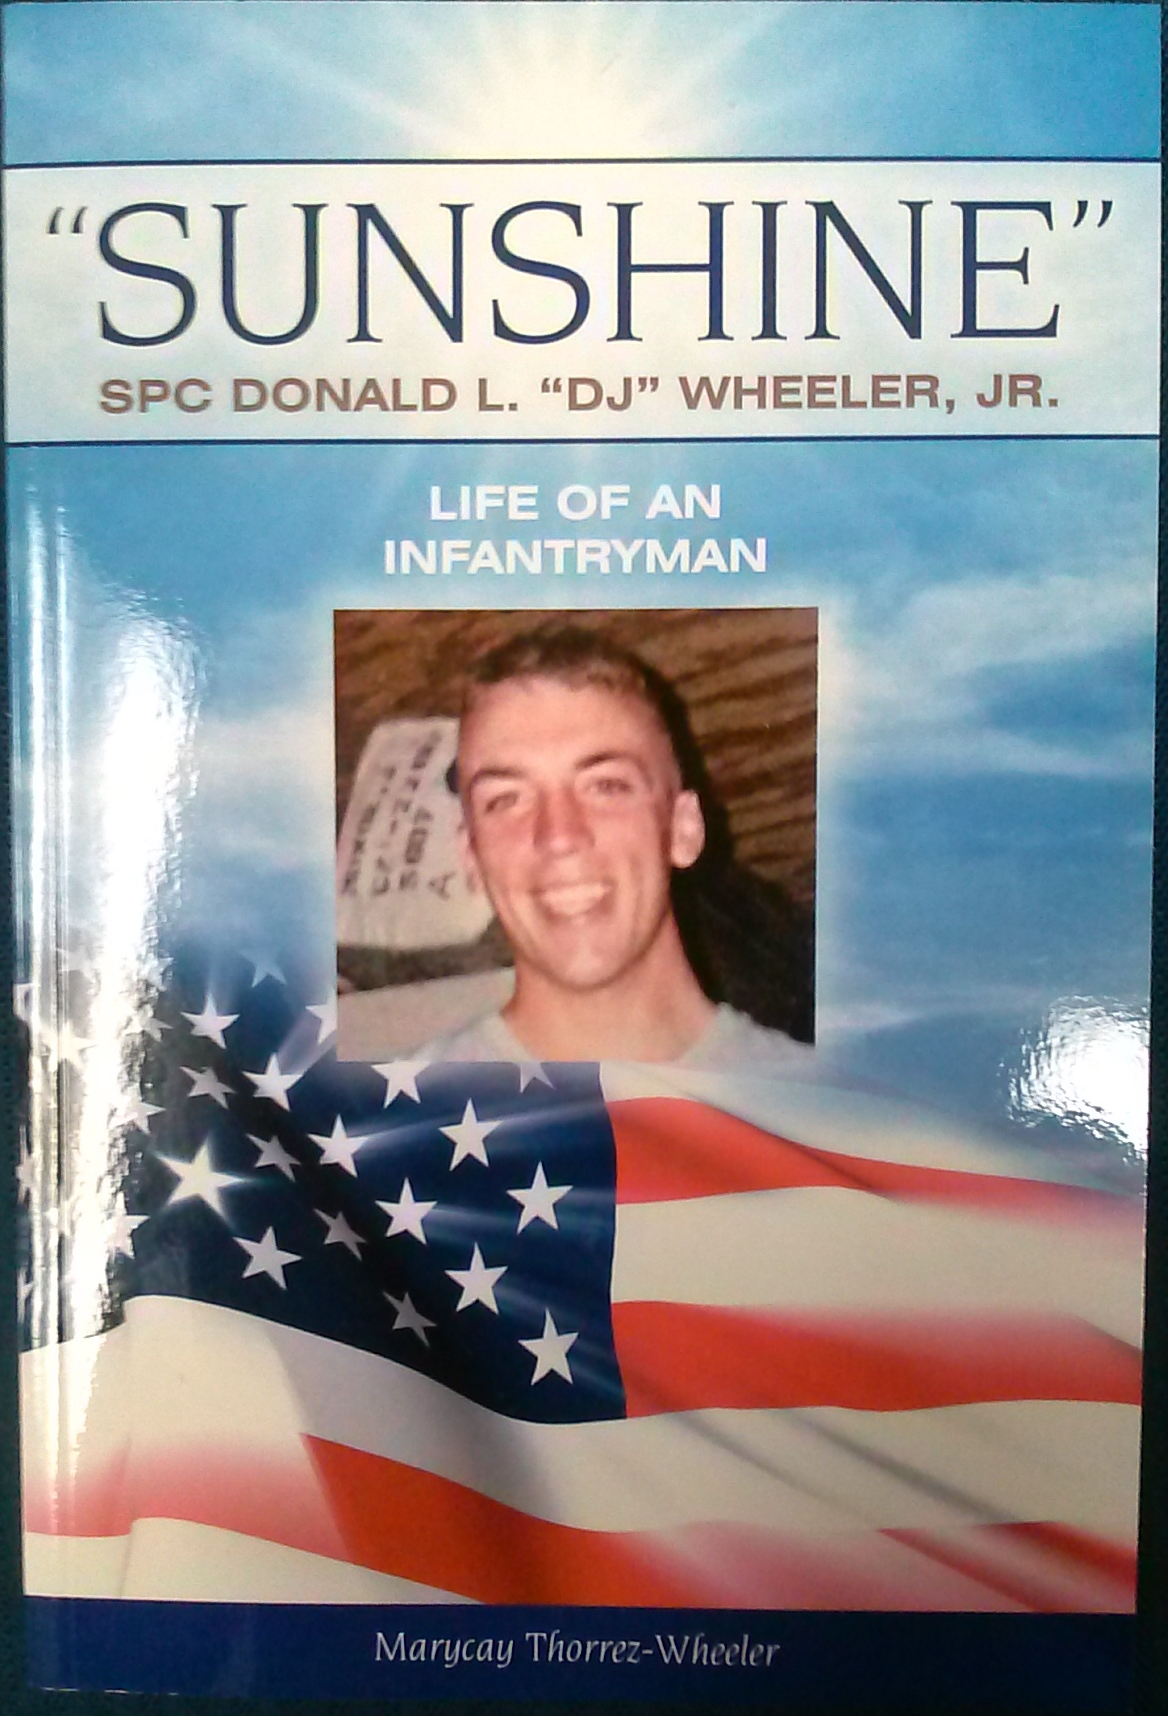 Sunshine: Life of an Infantryman